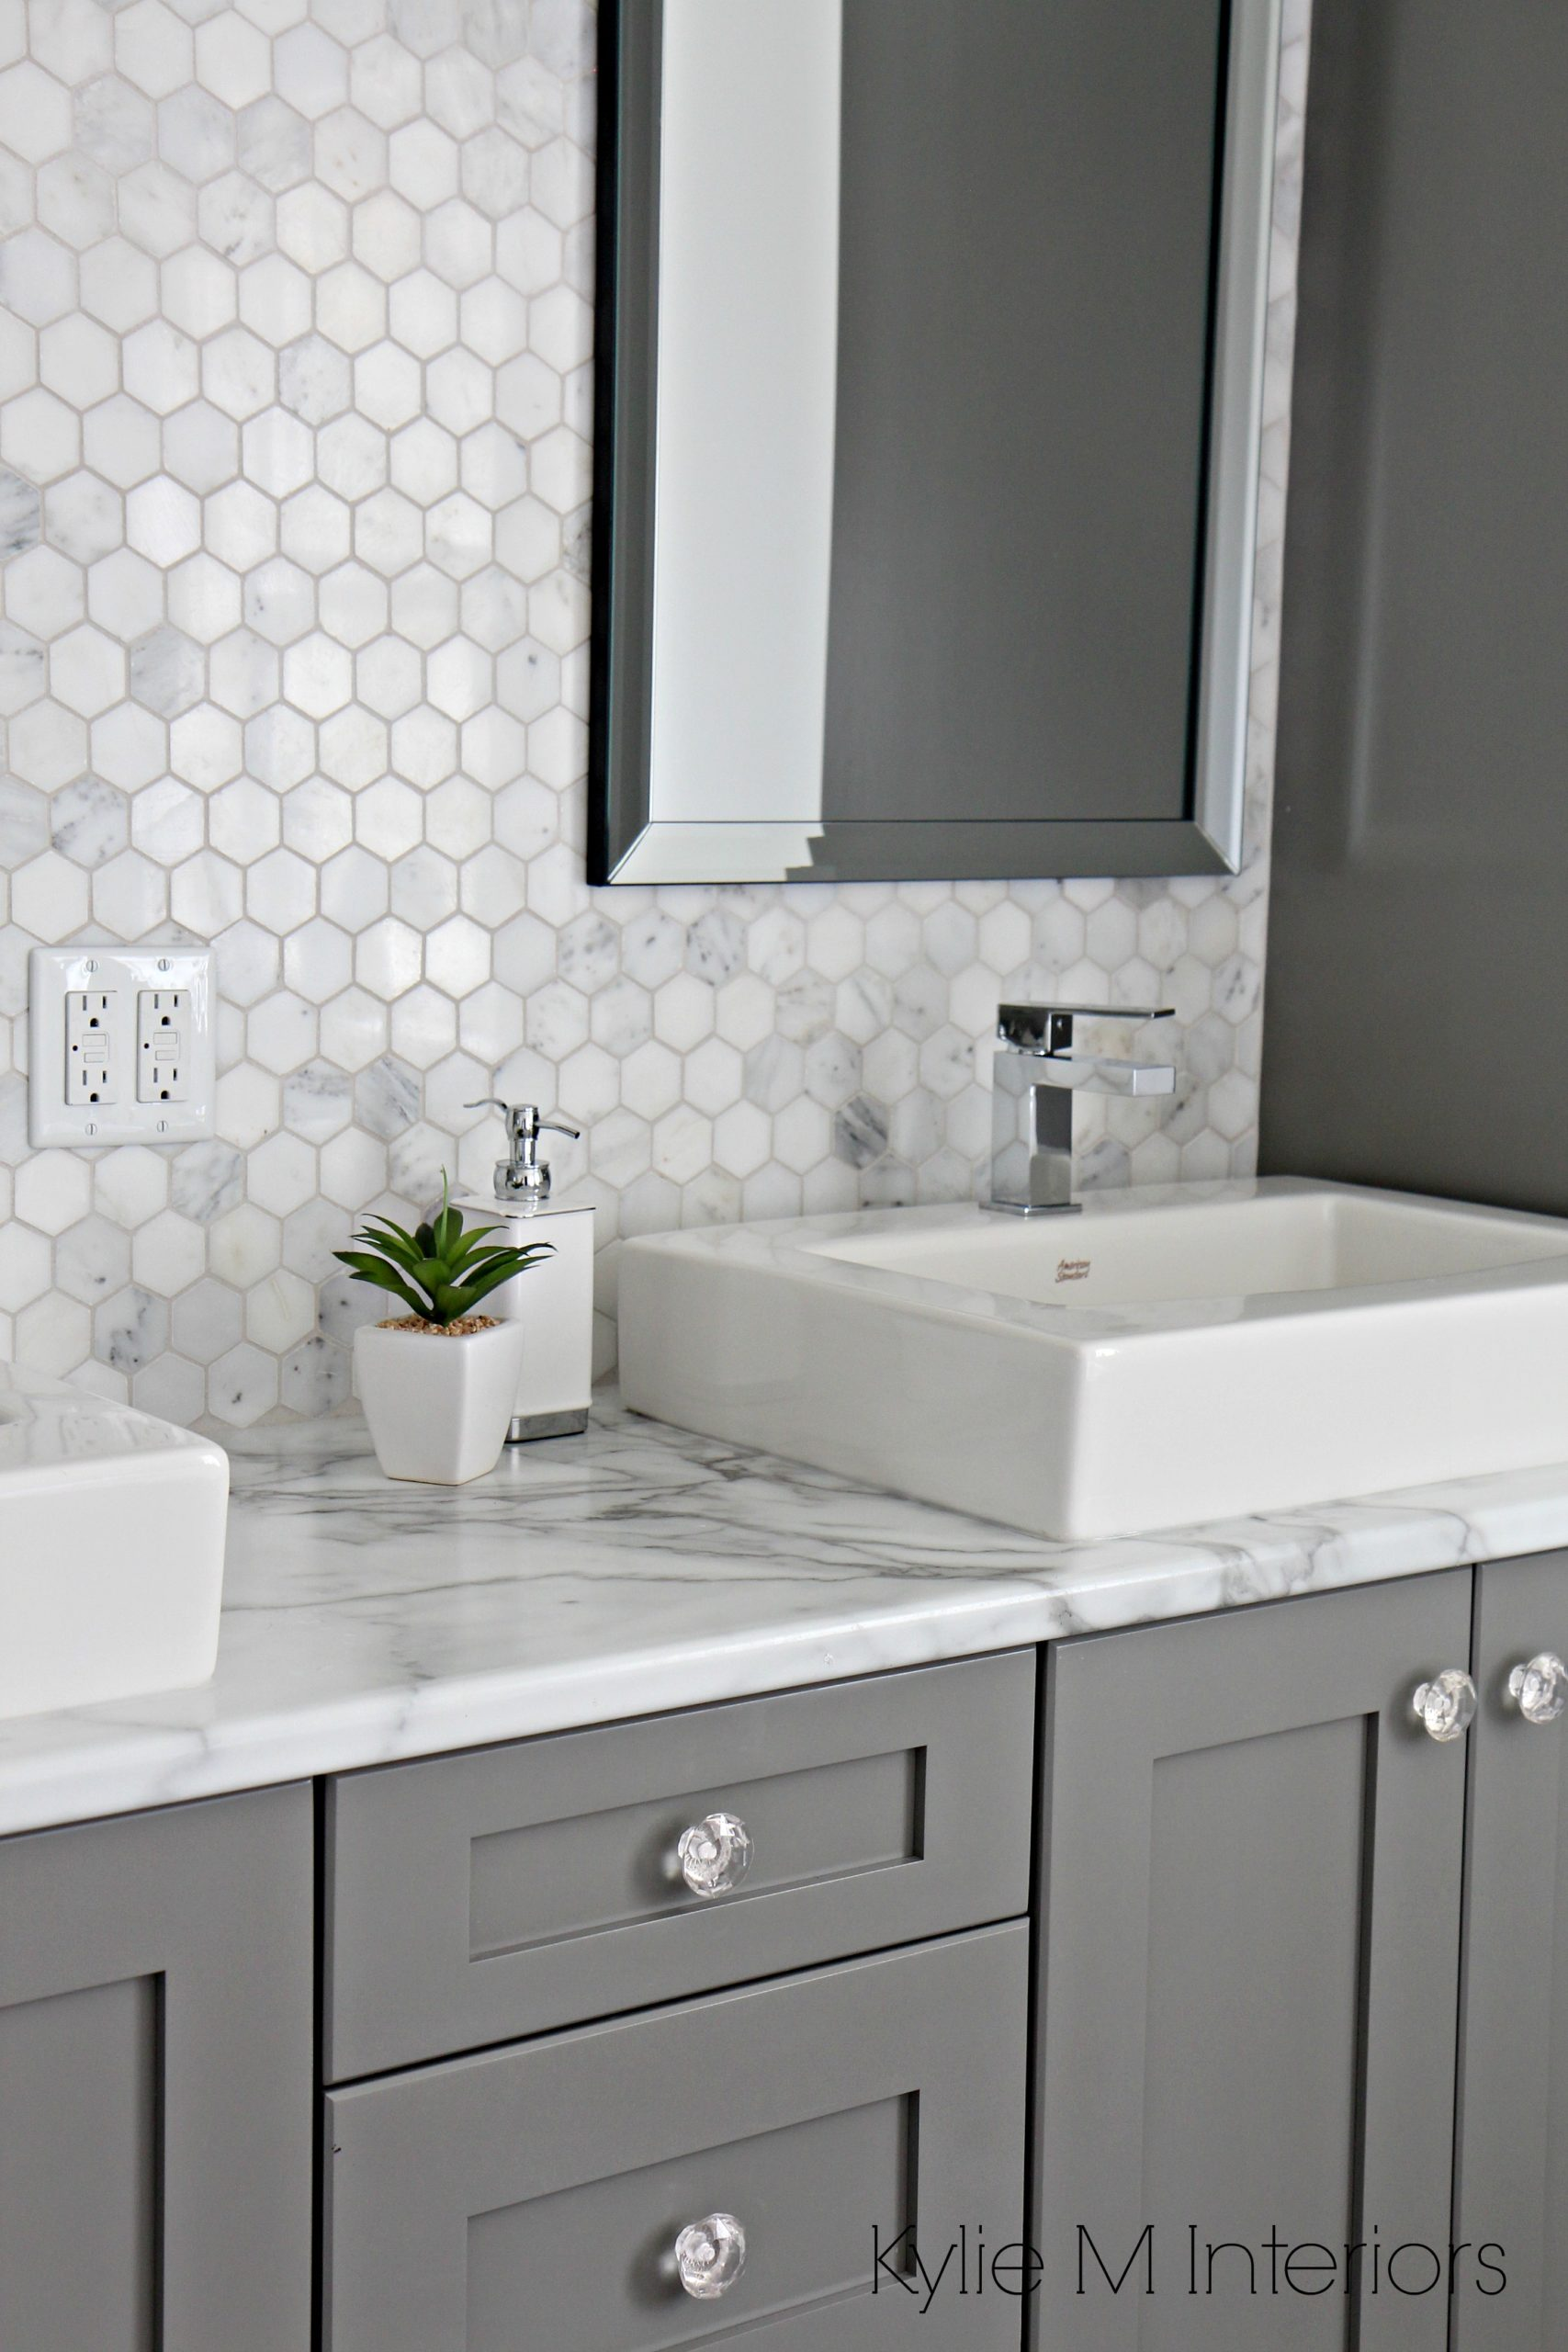 The New Era Of Laminate Countertops And Why They Rock Review Kylie M Interiors